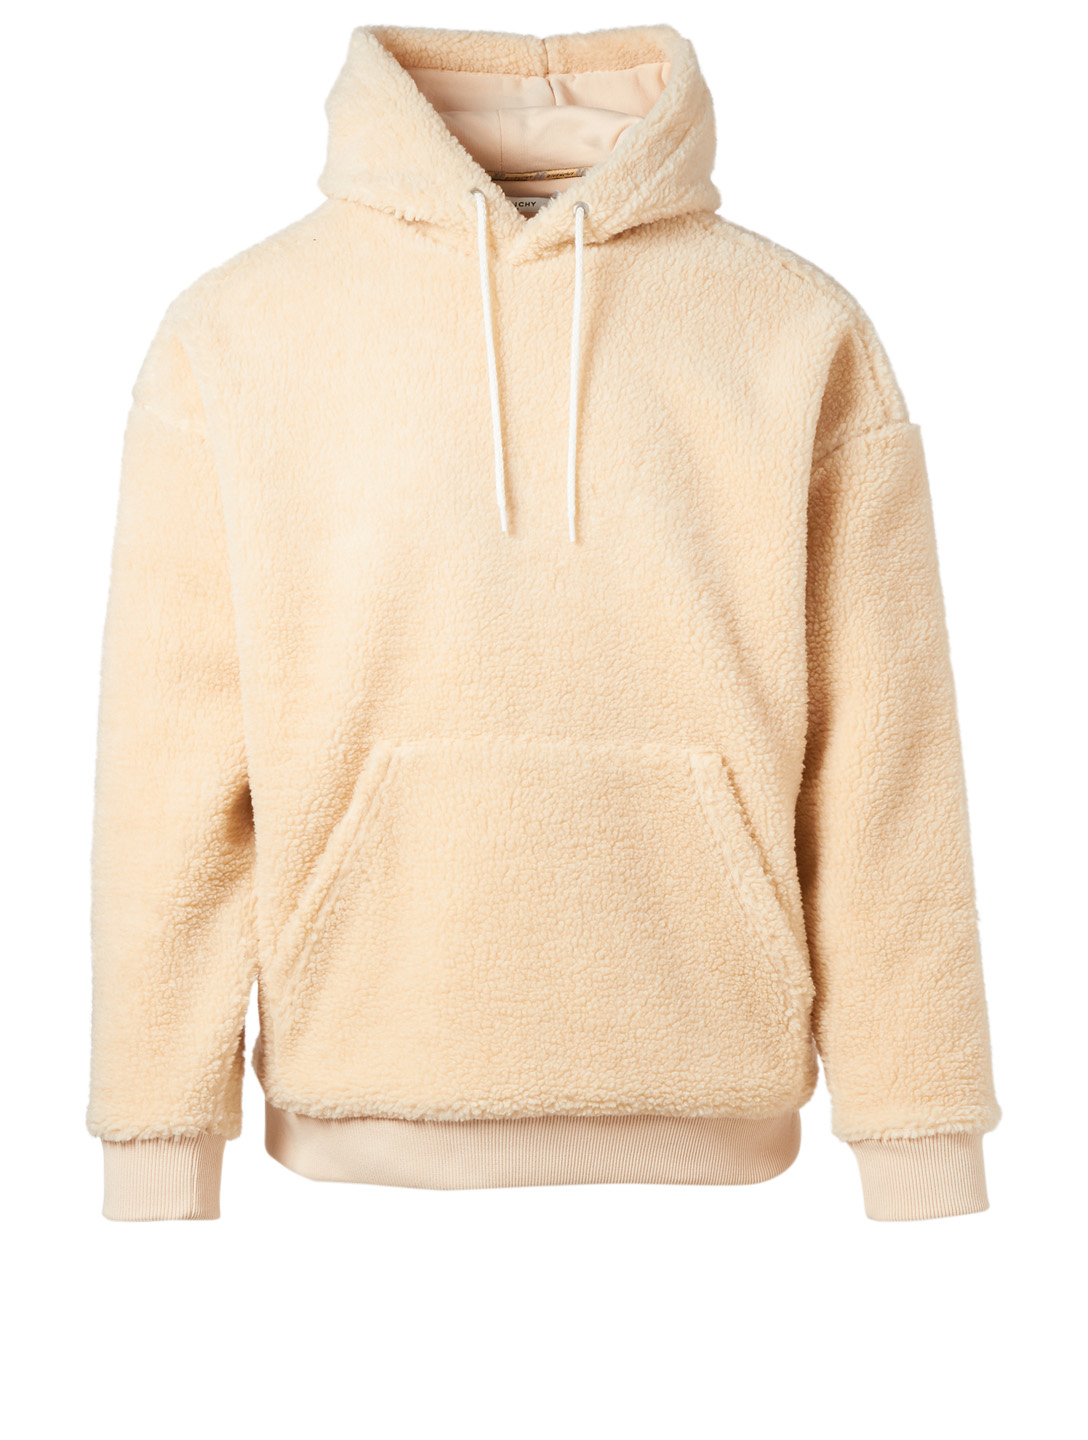 GIVENCHY Teddy Fleece Hoodie Men's Neutral